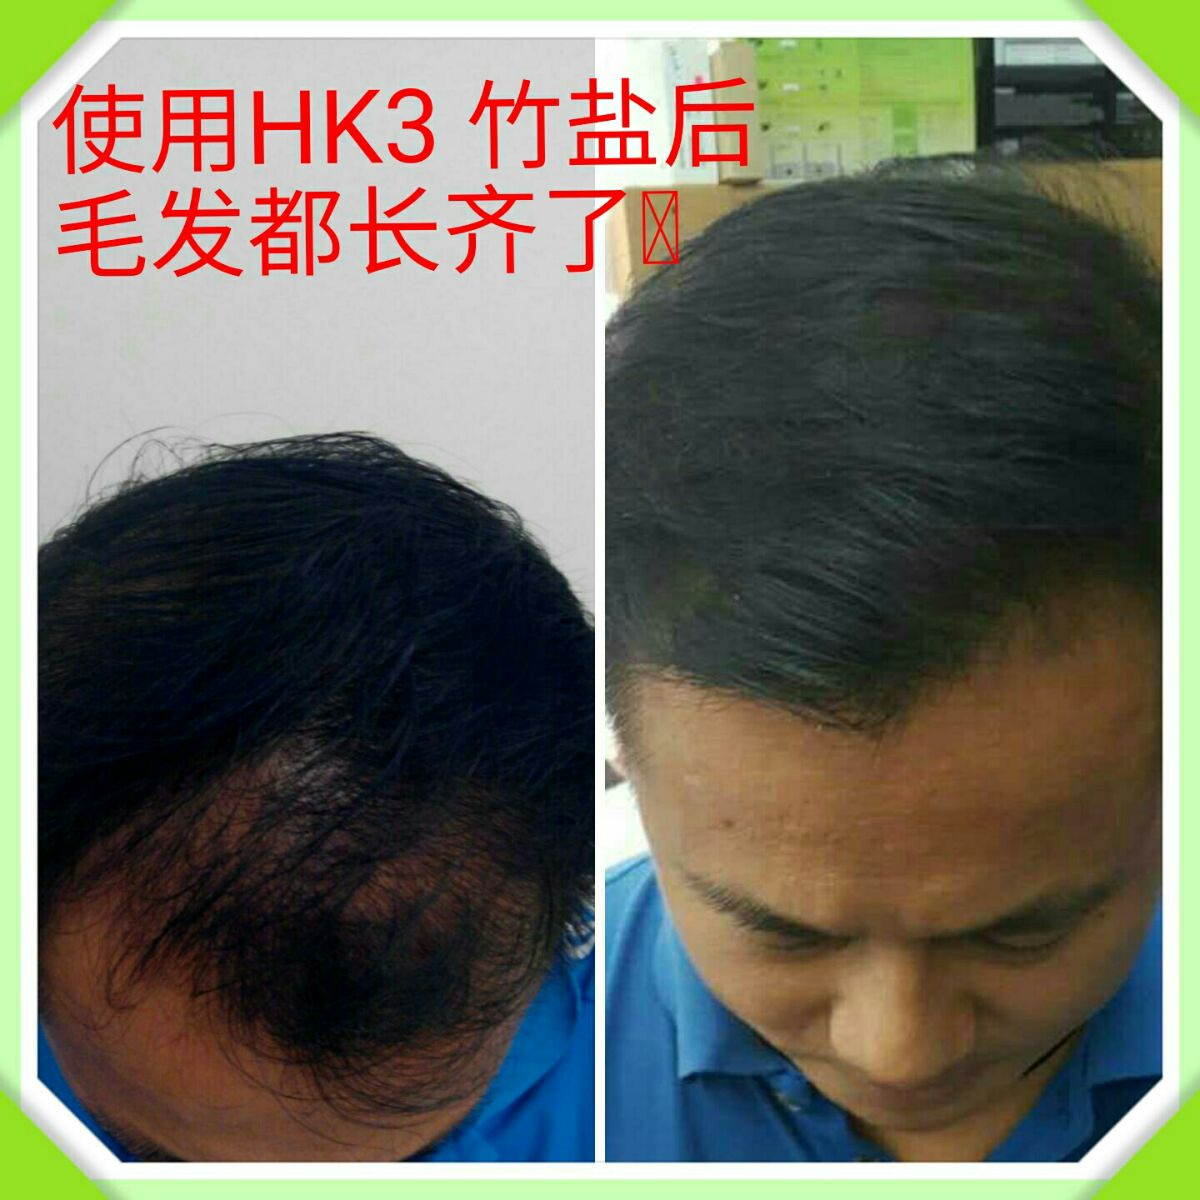 hk3 bamboo salt review hair loss